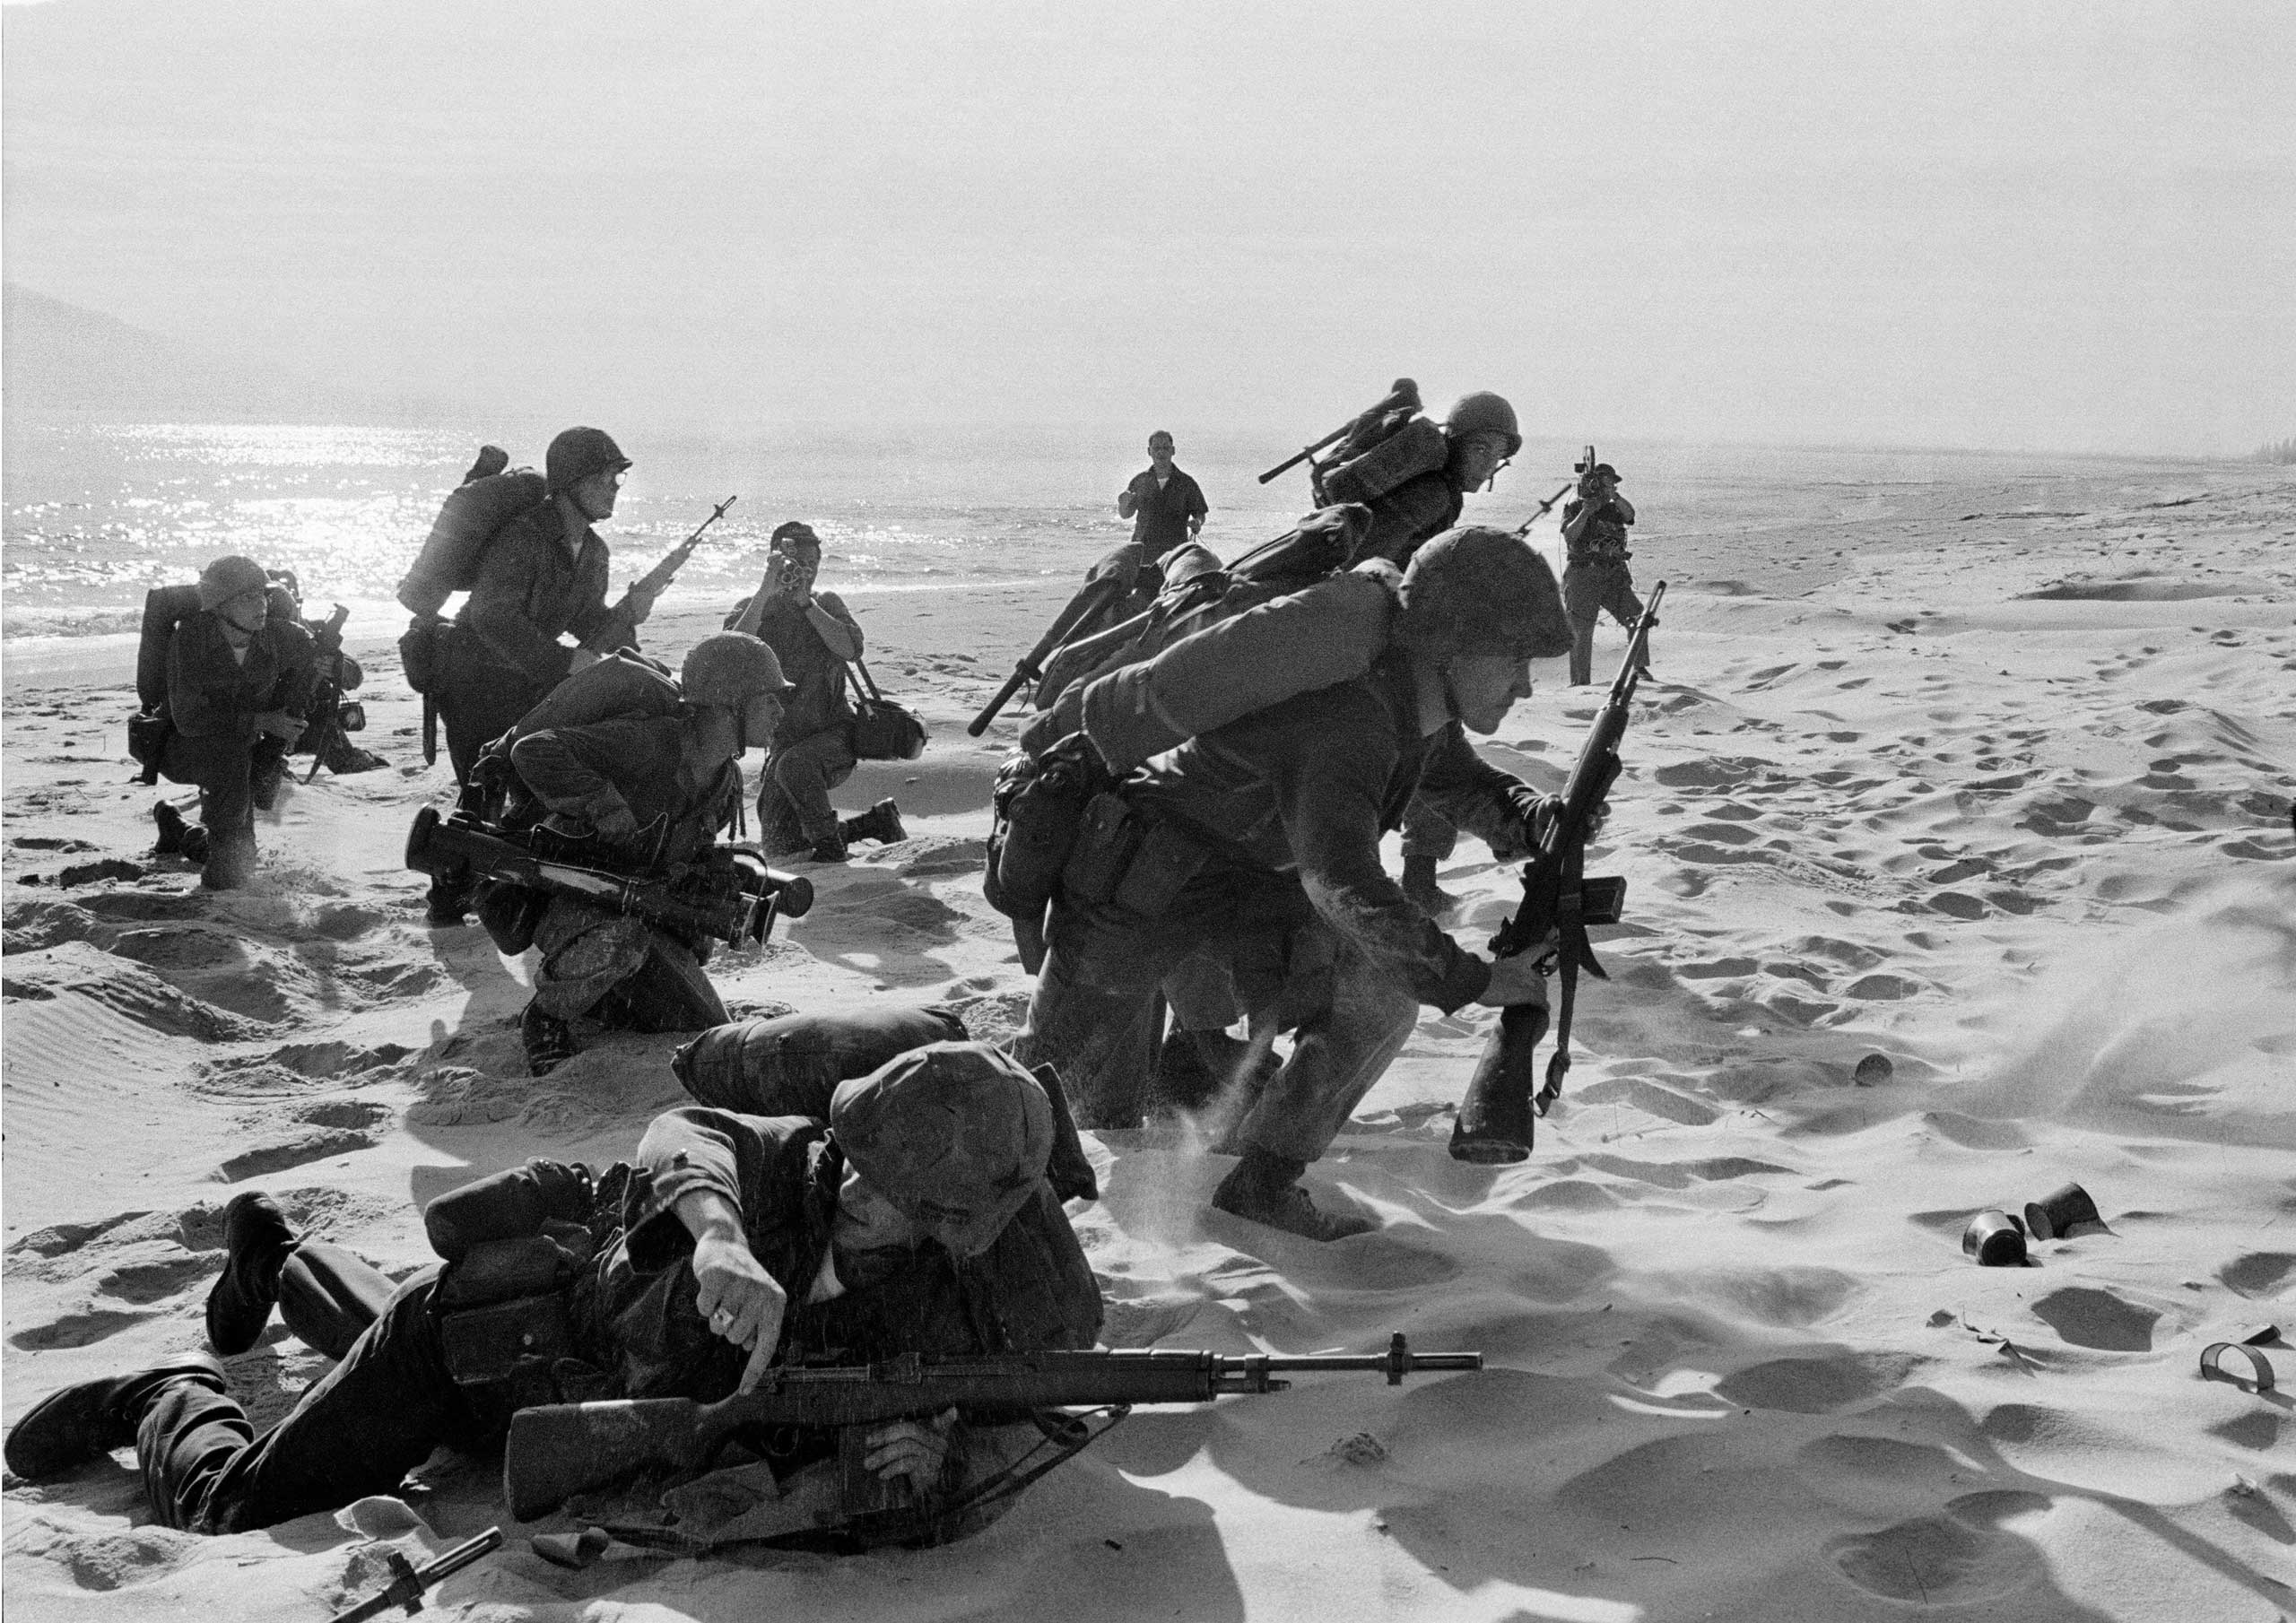 Newly-landed U.S. Marines make their way through the sands of Red Beach at Da Nang, on their way to reinforce the air base as South Vietnamese Rangers battled guerrillas about three miles south, on April 10, 1965.